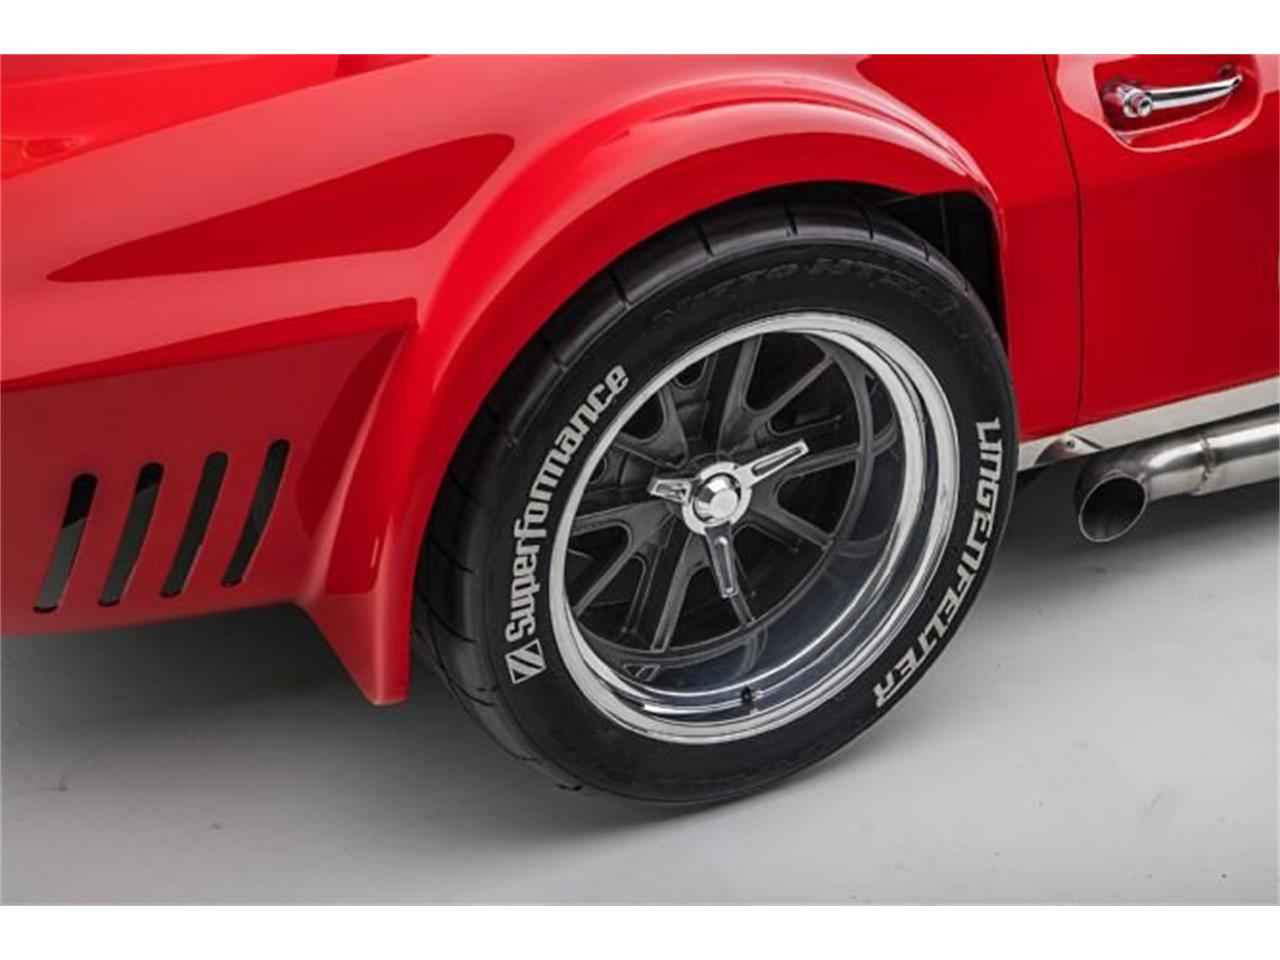 Large Picture of 1963 Superformance Corvette Grand Sport - $189,950.00 Offered by Hillbank Motorsports - PNW3